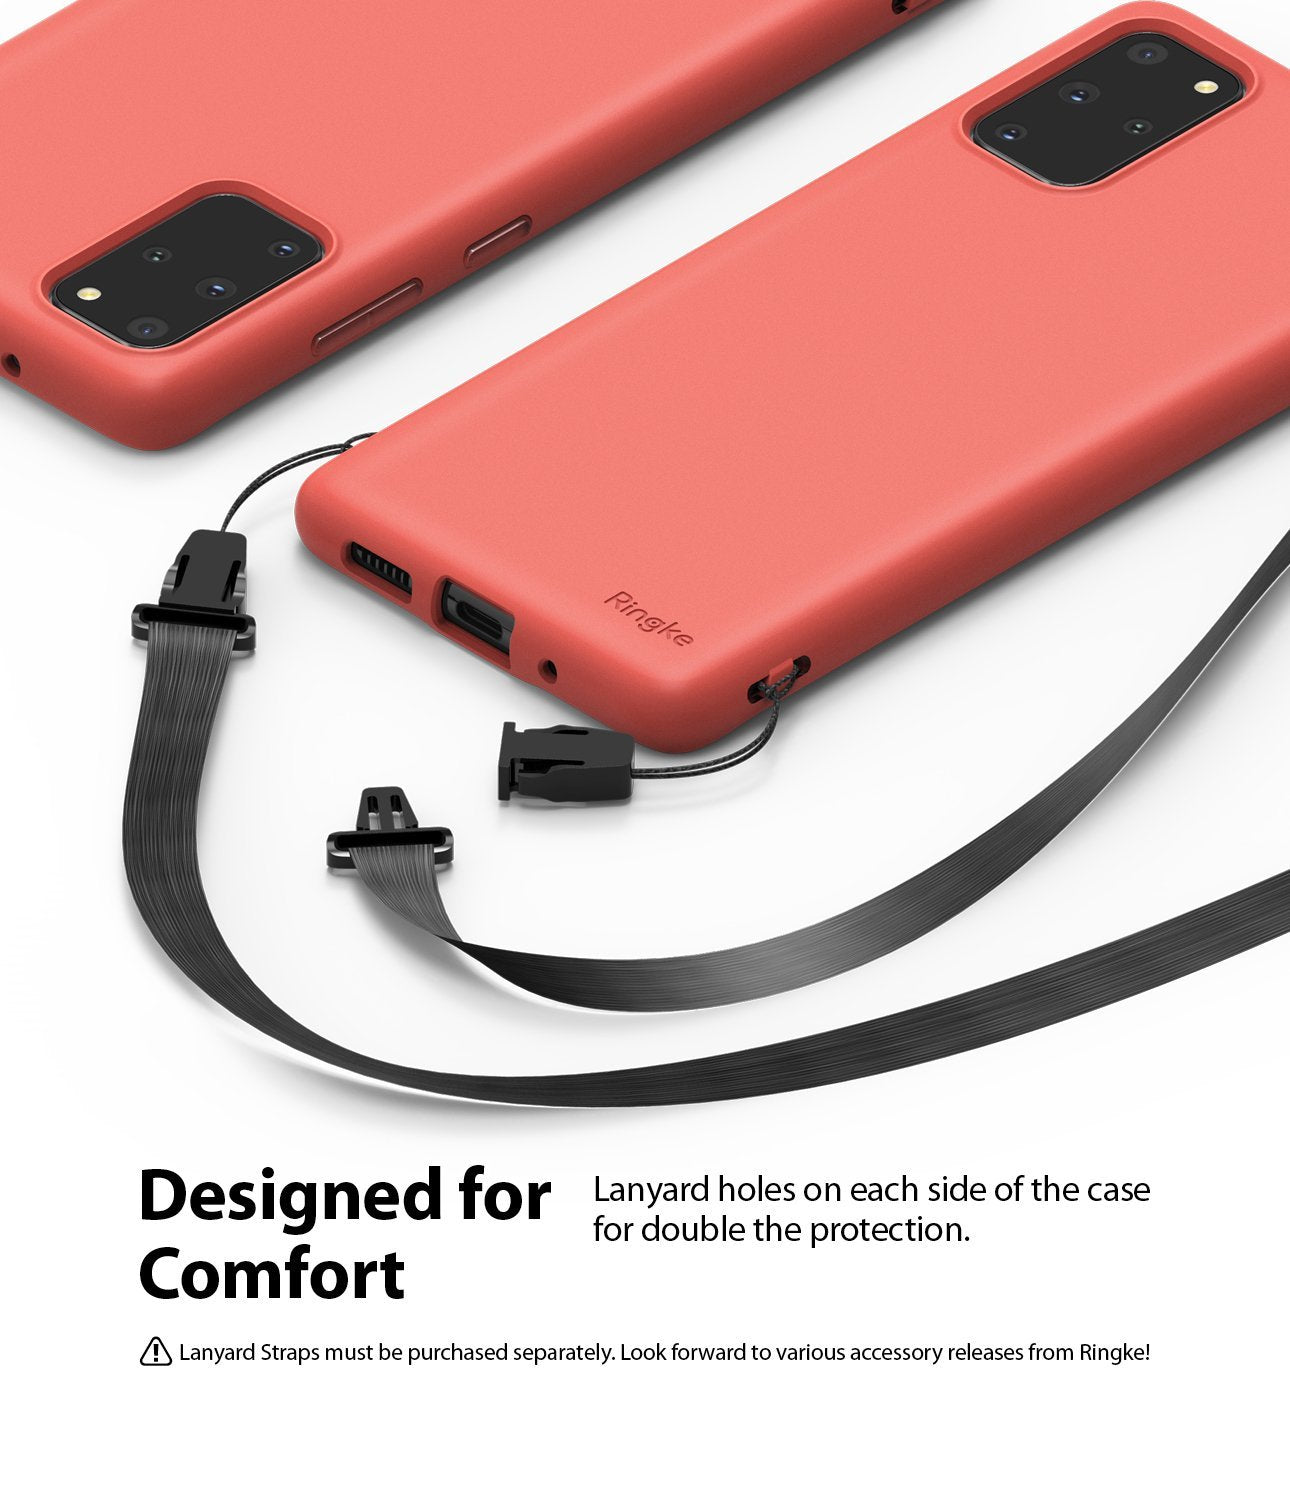 Galaxy S20 plus Case ringke Air-S, lanyard holes, designed for comfort